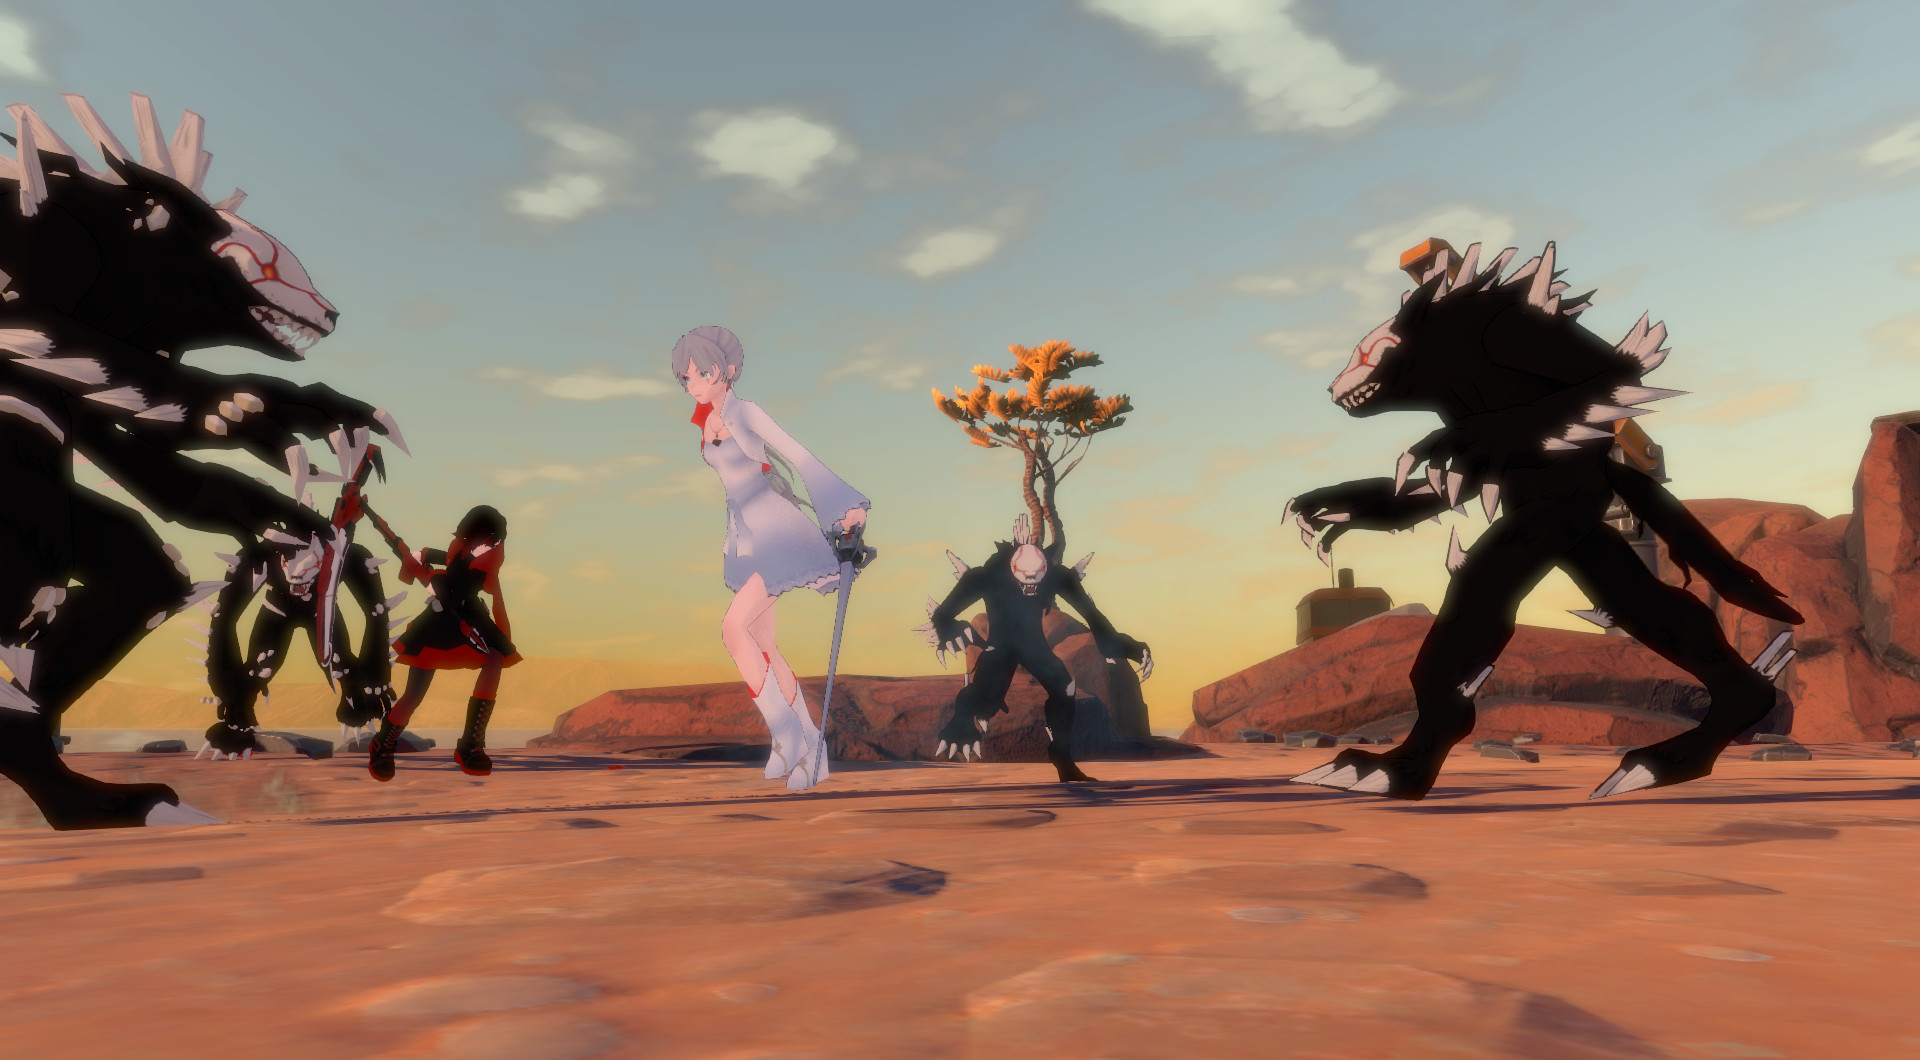 RWBY Grimm Eclipse Features